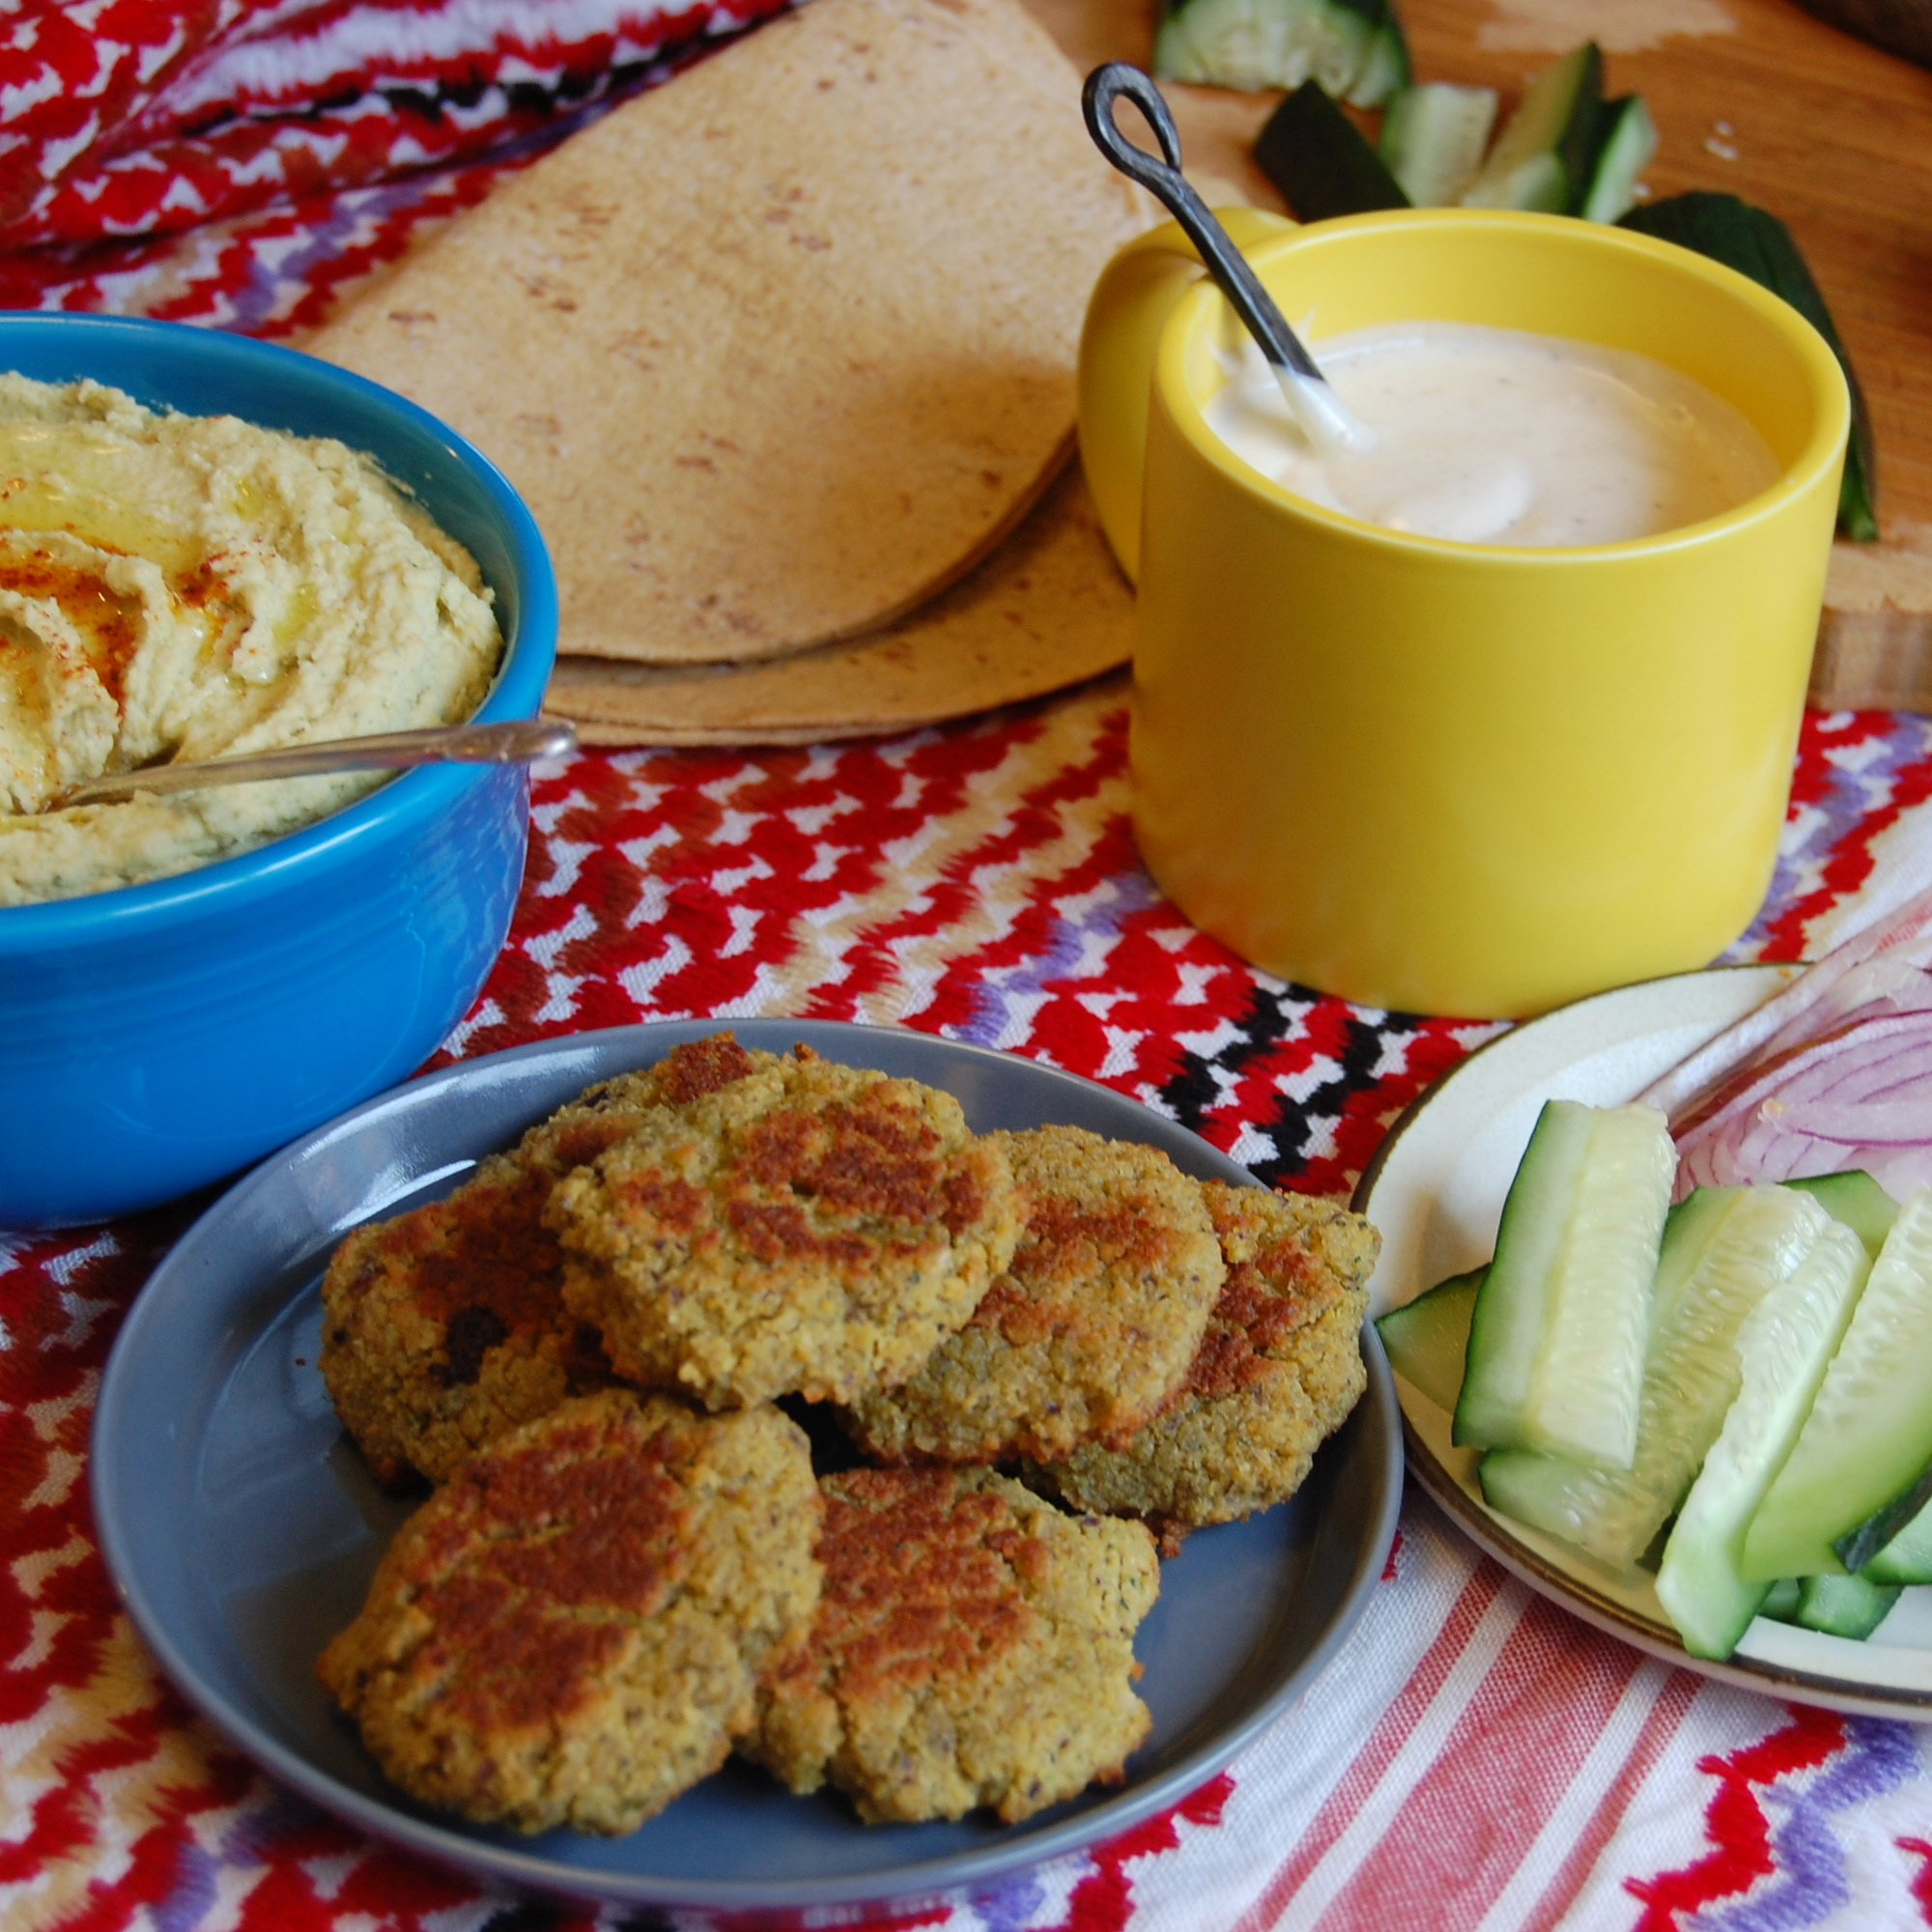 ... baked quinoa patties baked falafel patties with yogurt tahini sauce